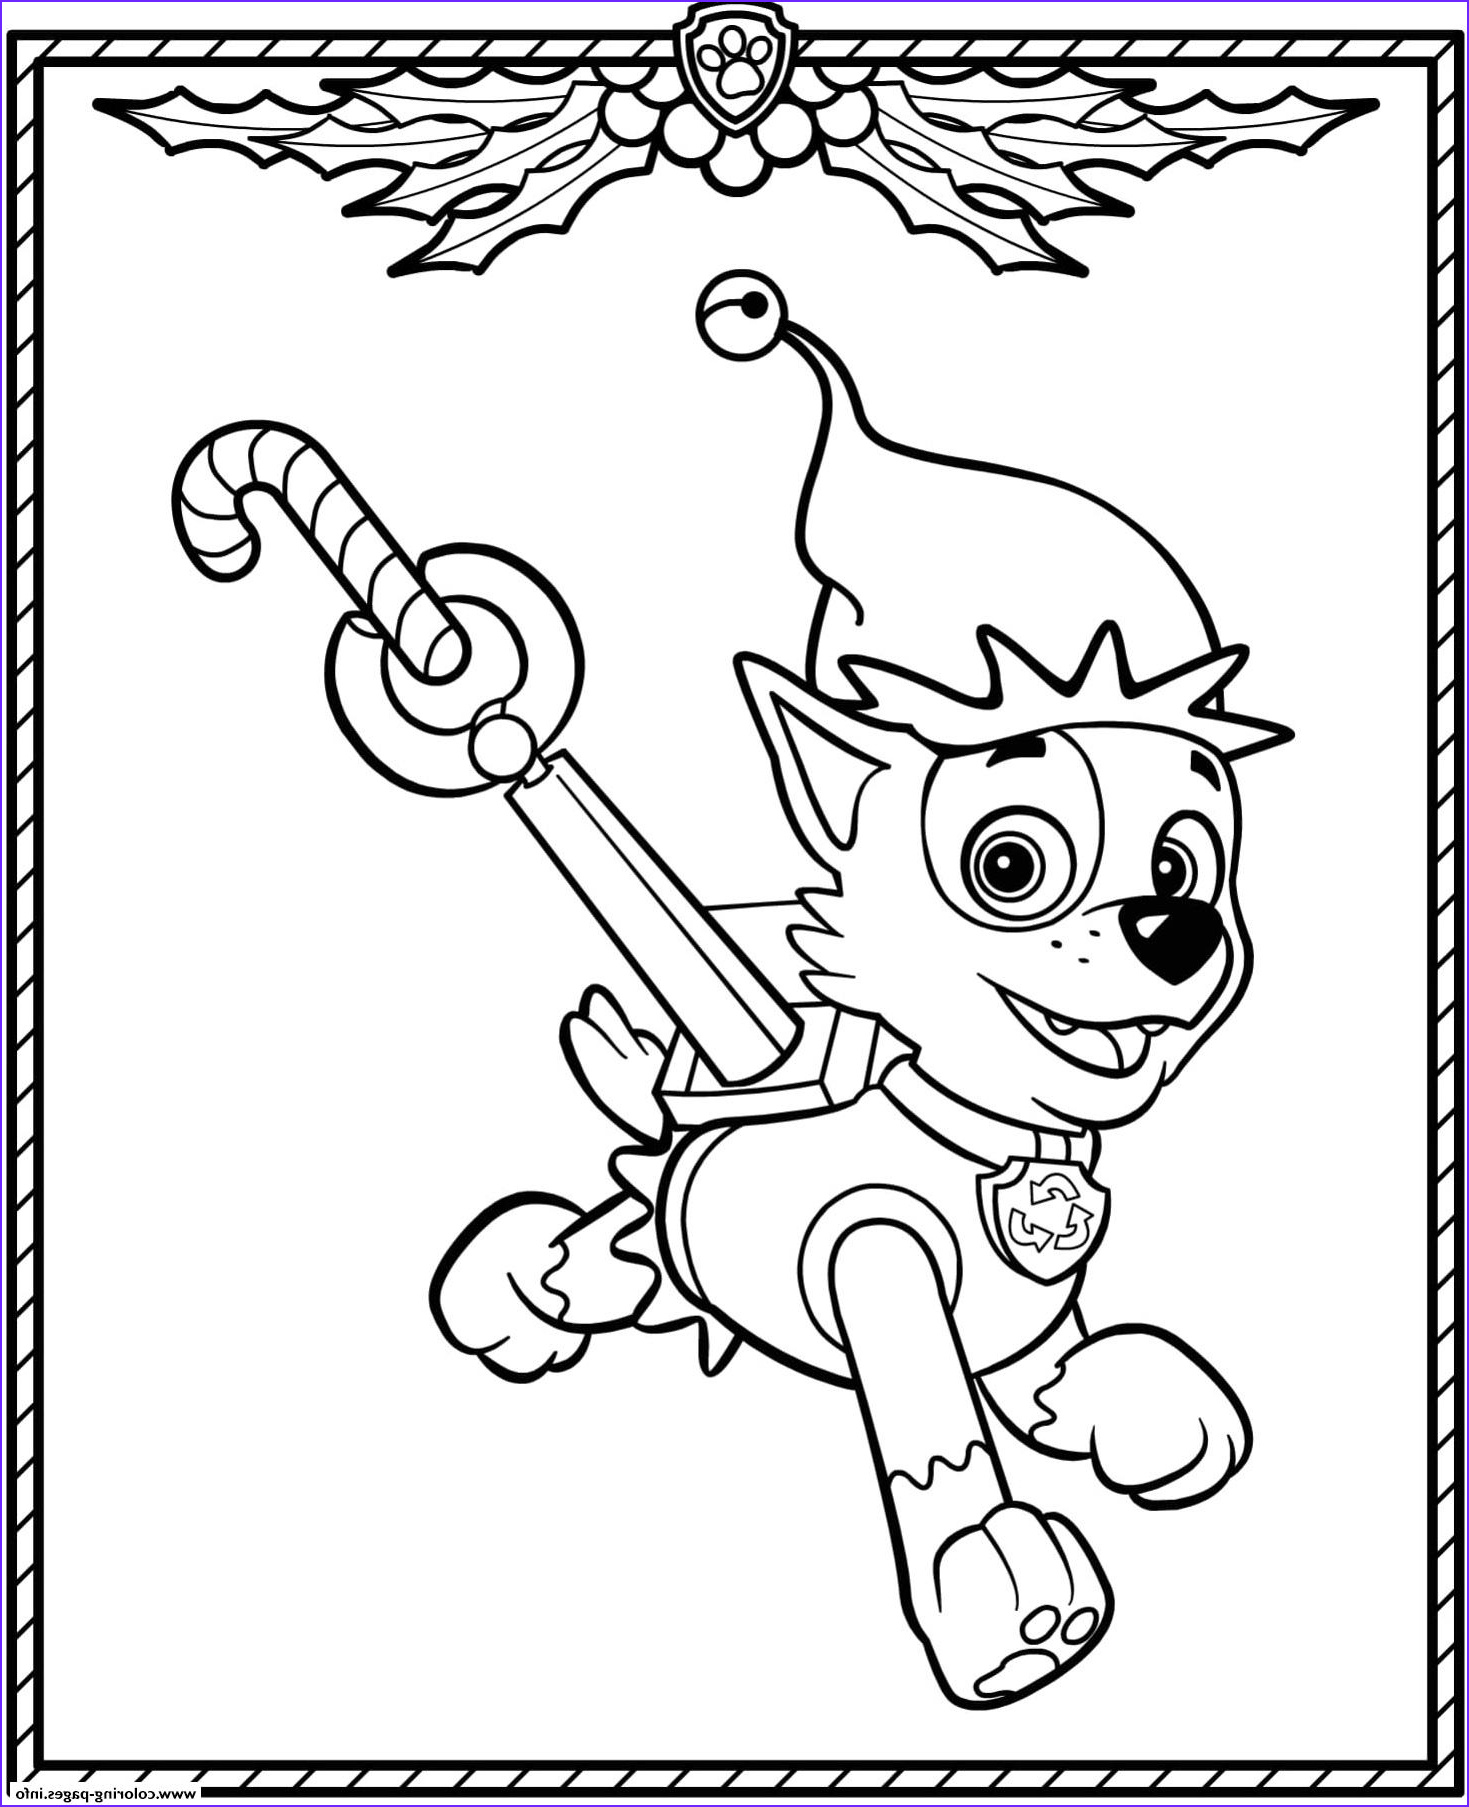 Christmas Paw Patrol Coloring Page New Gallery Paw Patrol Holiday Christmas Rocky Coloring Pages Printable